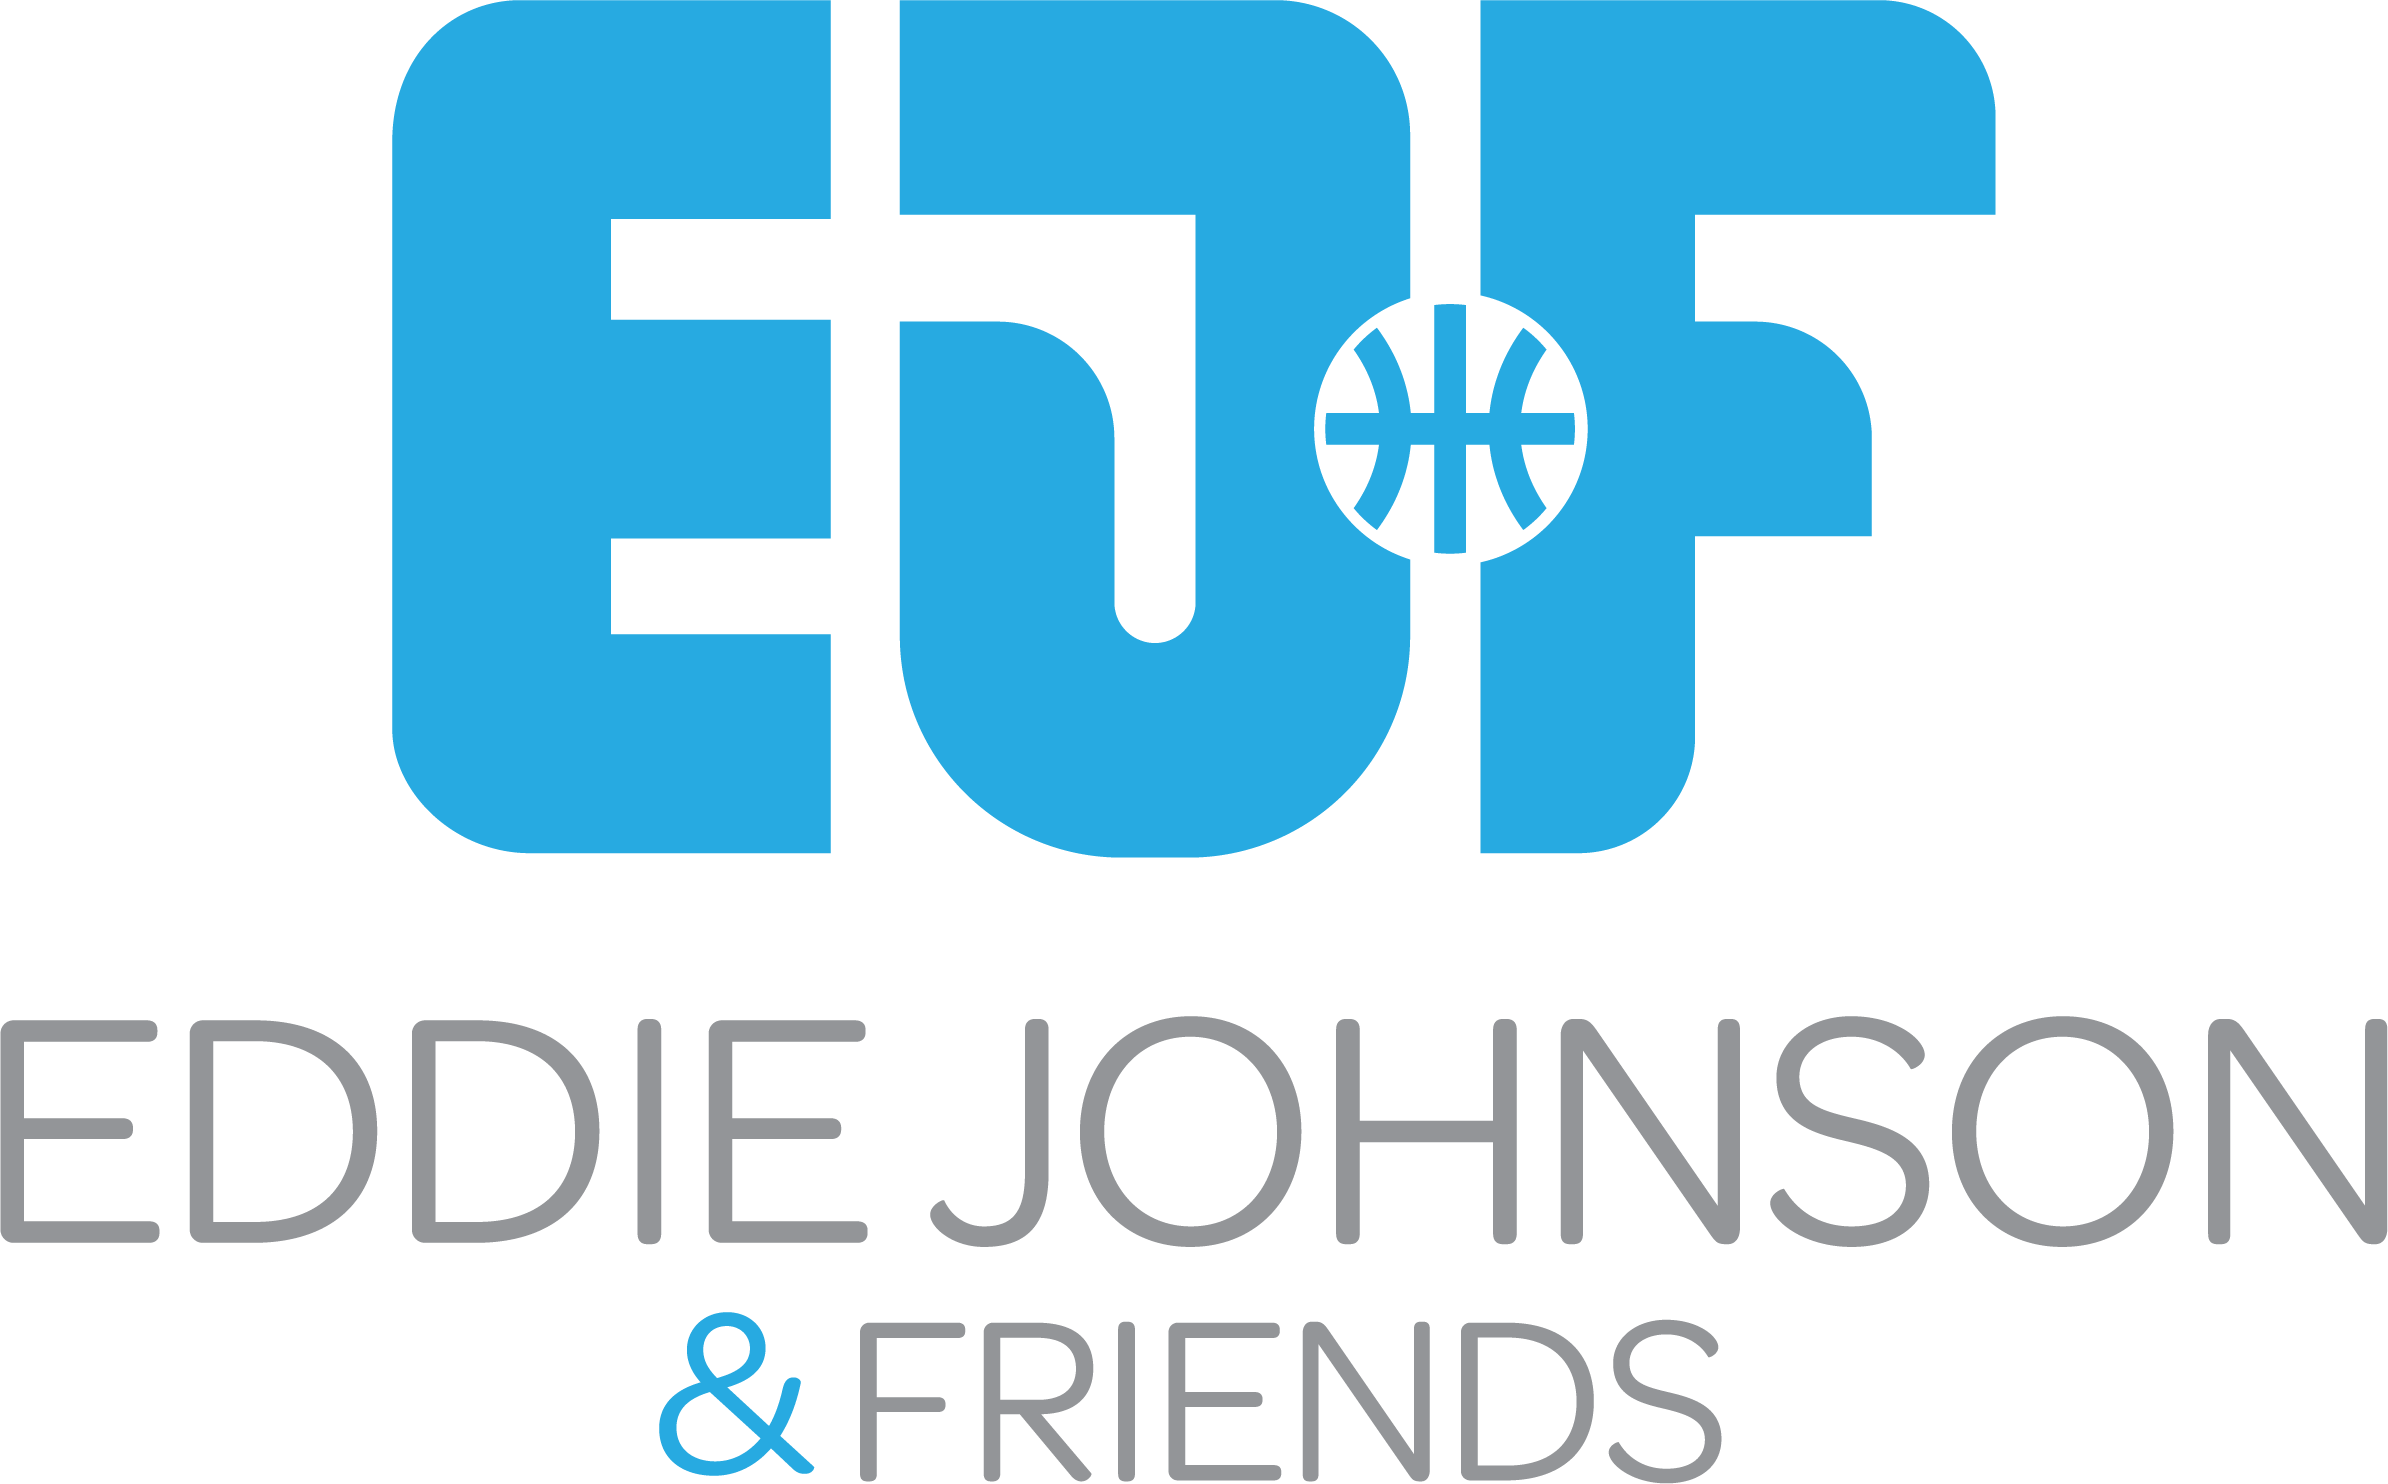 Eddie Johnson & Friends Online Auction and Live Event